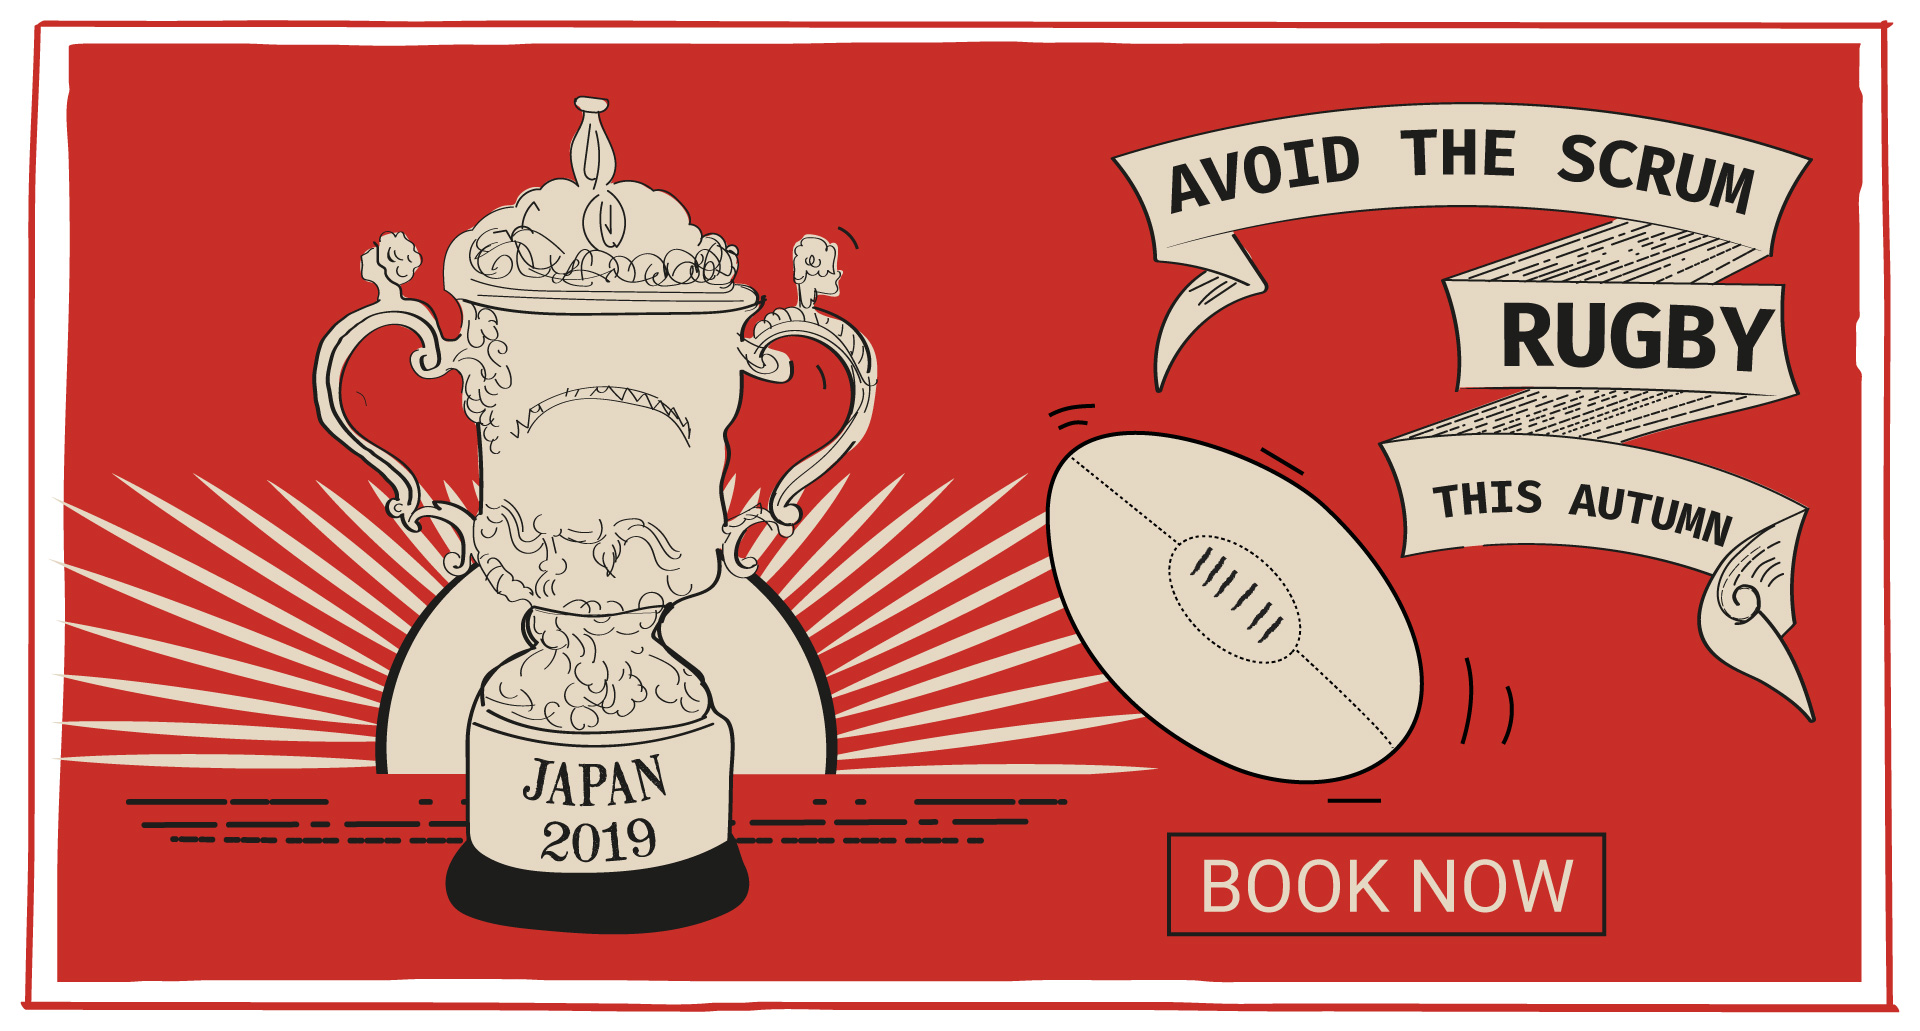 Rugby World Cup at The Lyttelton Arms